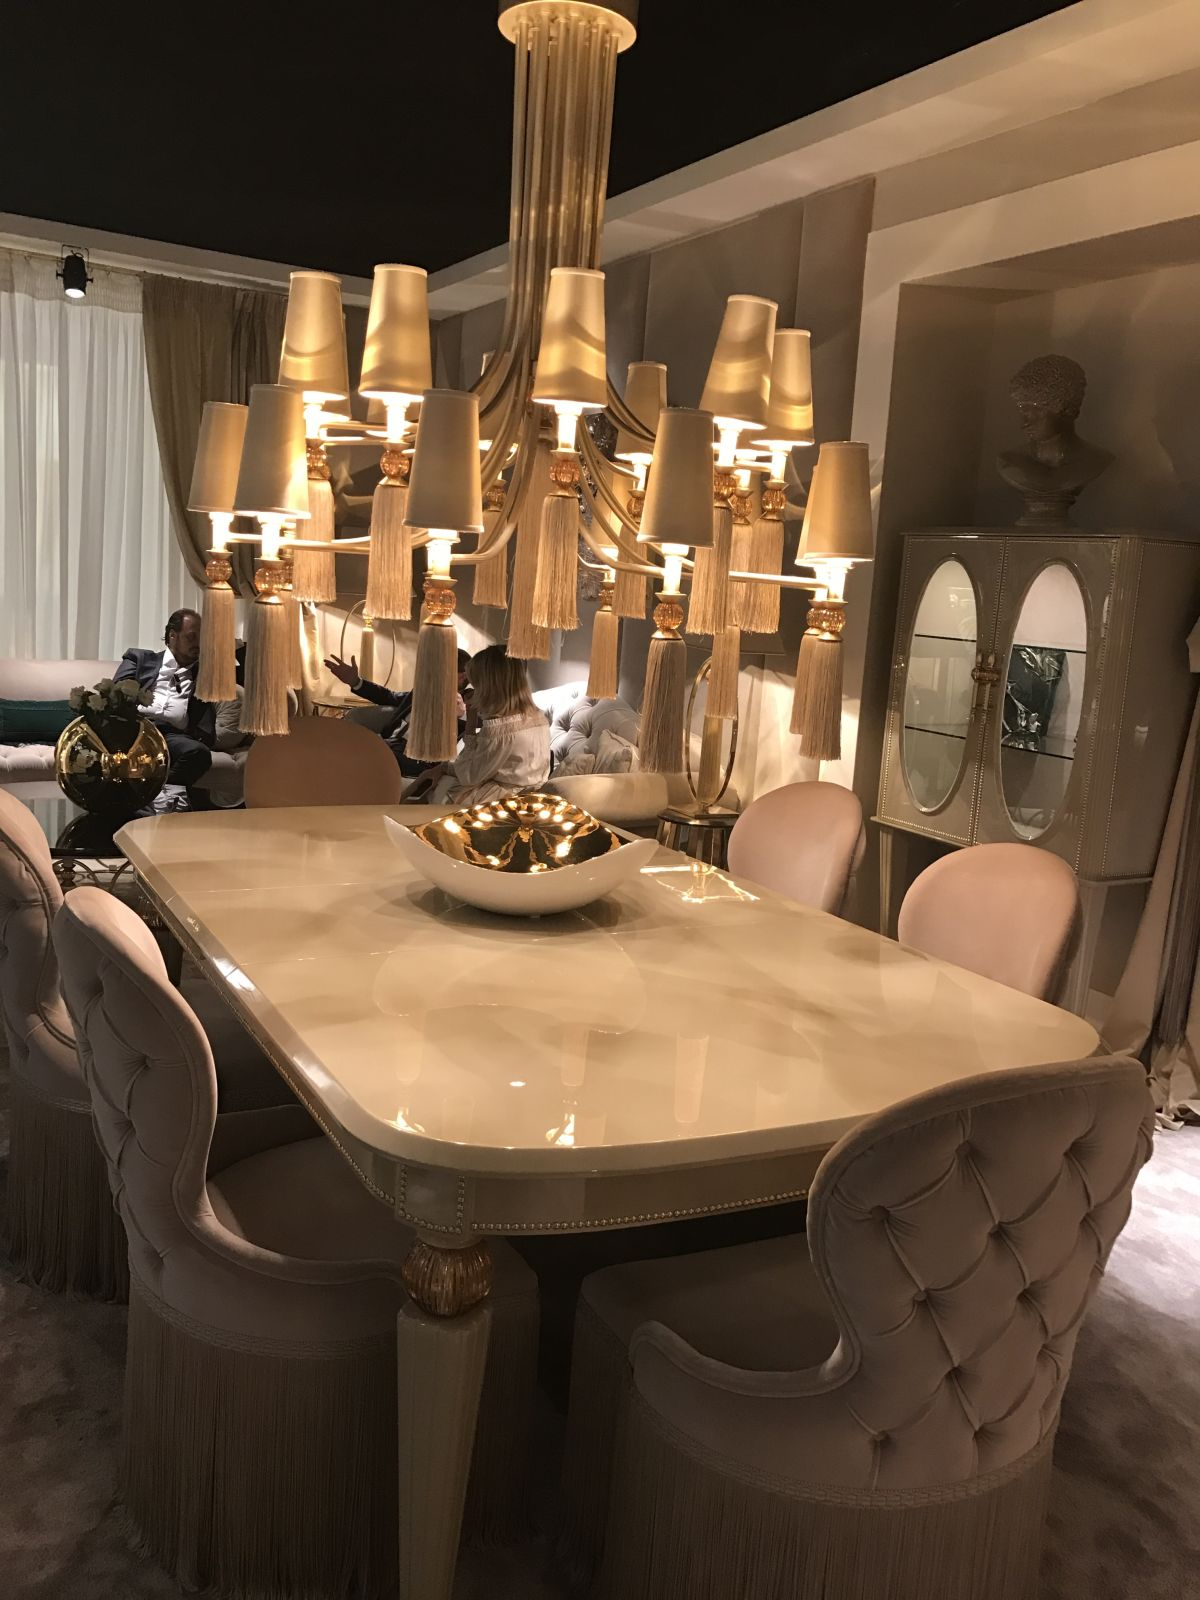 A hint of Baroque dining style is modern and opulent at the same time.